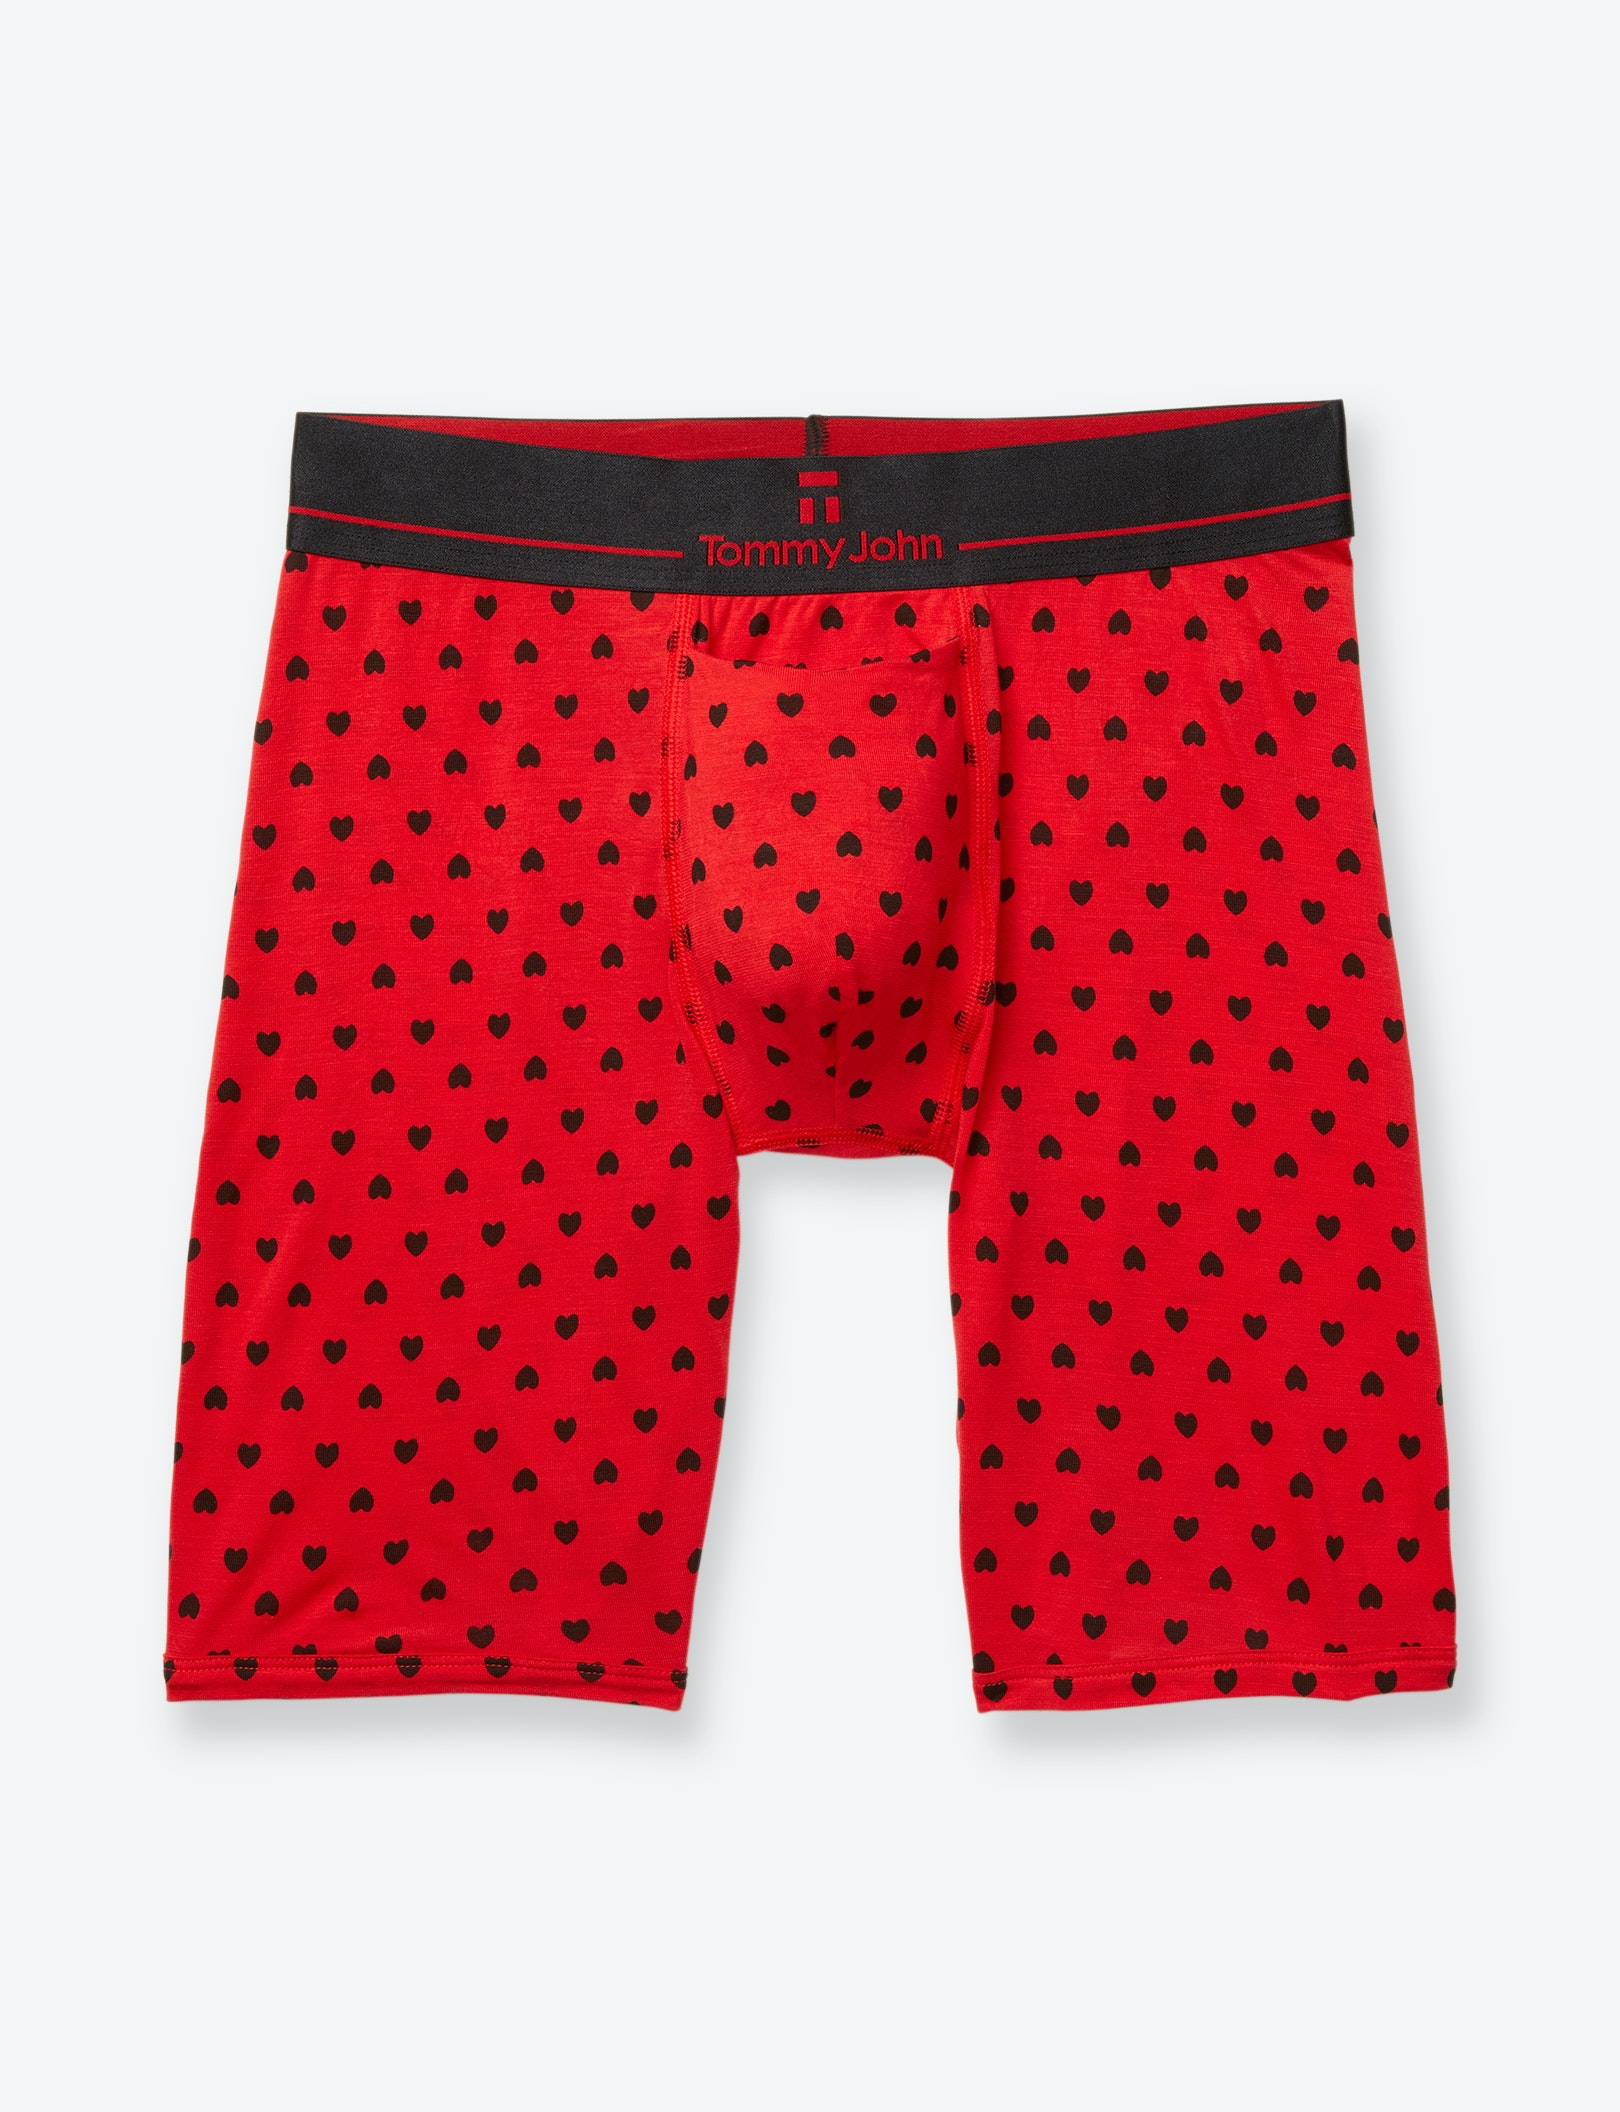 image of valentines day second skin heart boxer brief